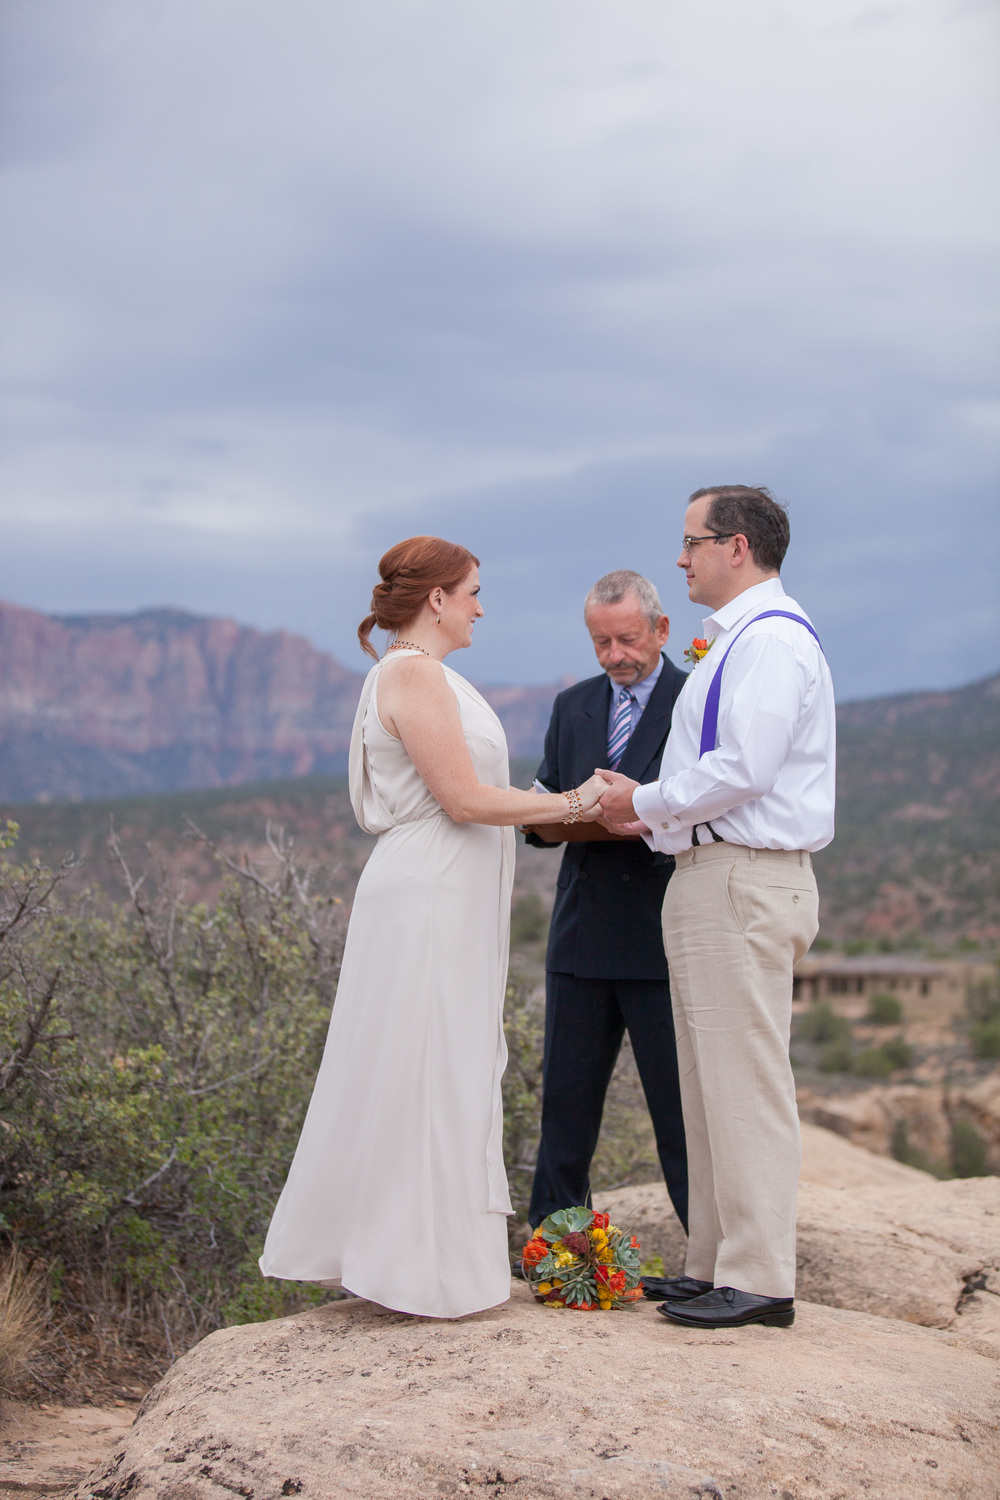 ReschlyWeddingZionNationPark2013 (37 of 235).jpg